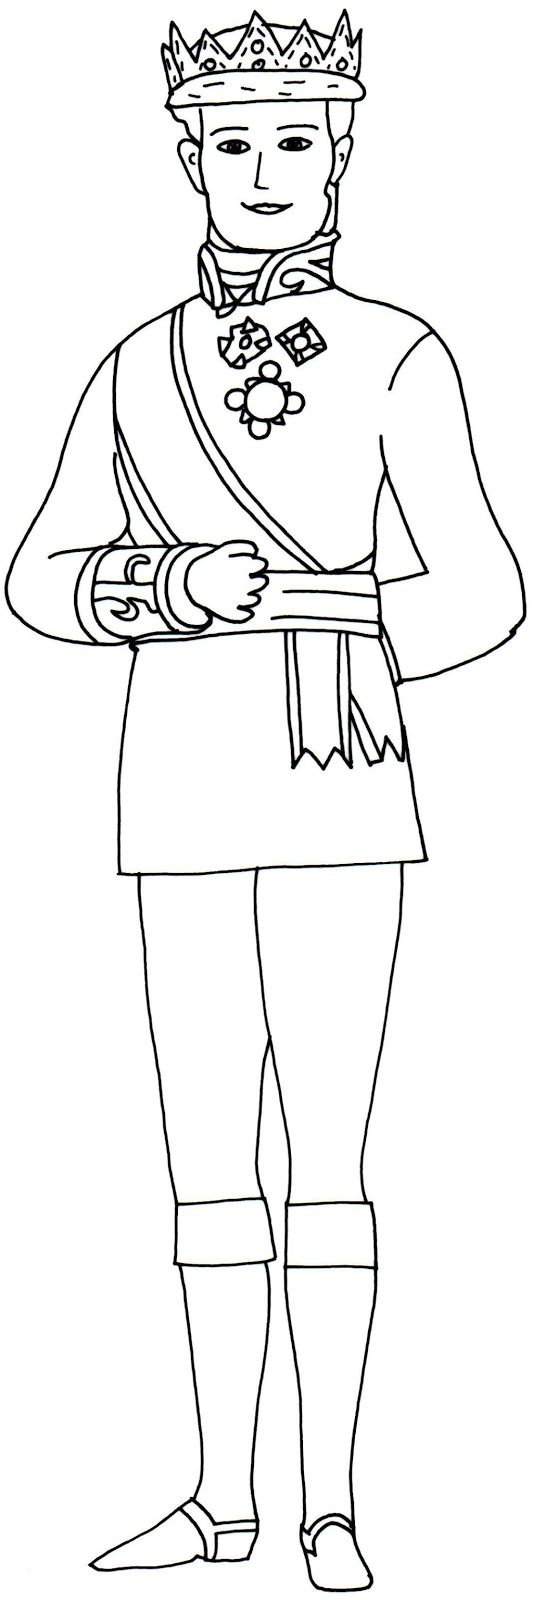 sofia the first coloring pages games - 17 best sofia the first coloring page images on pinterest